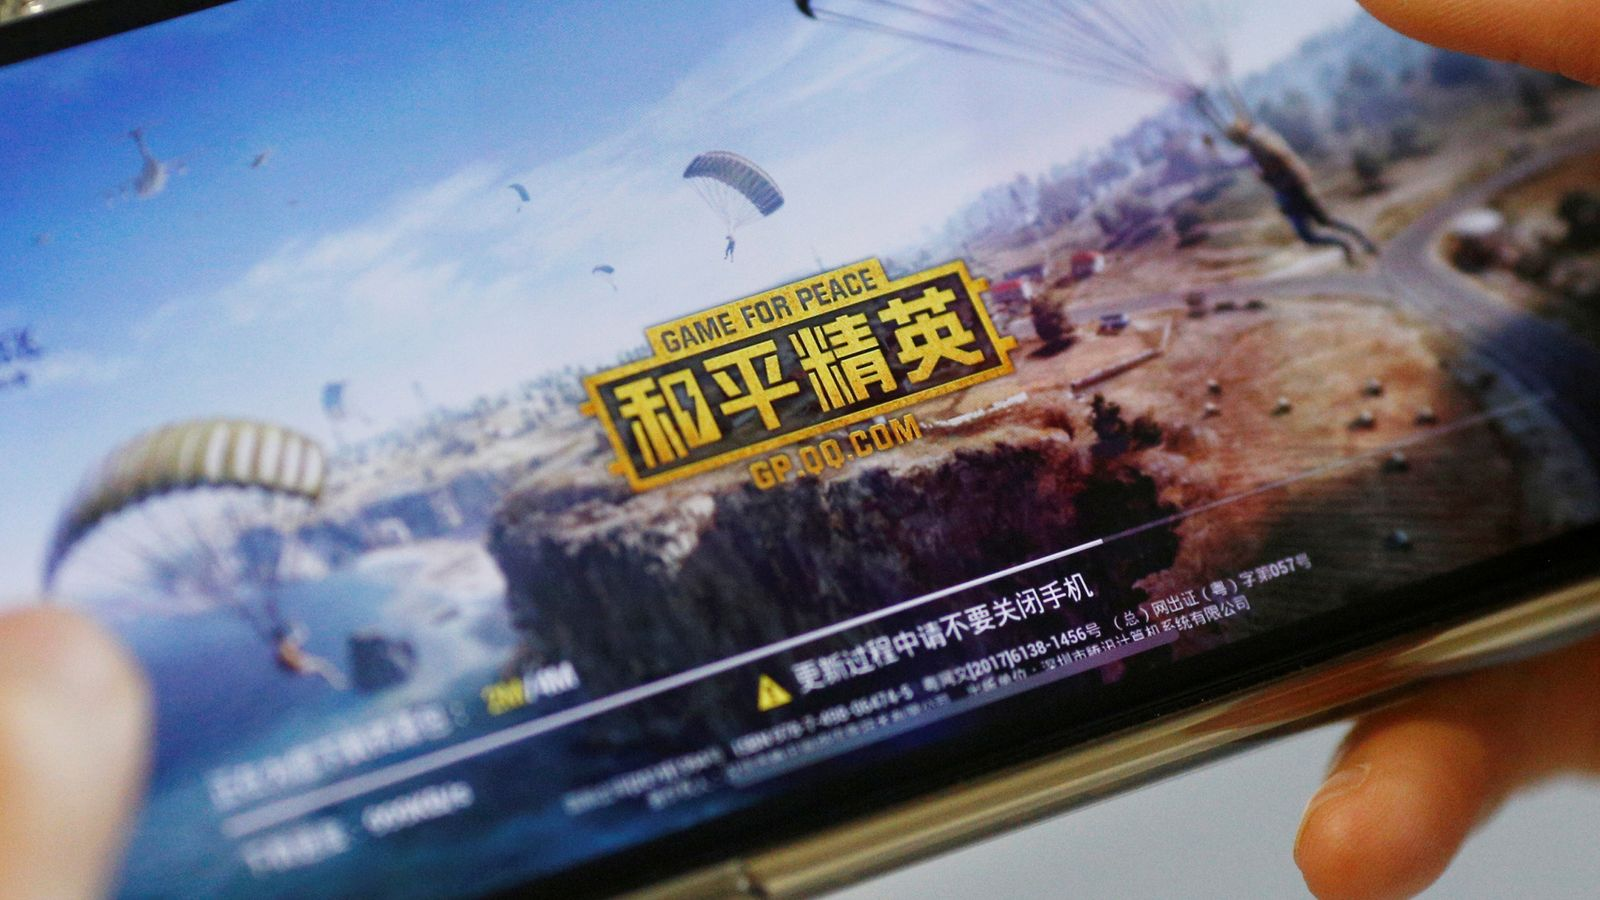 Online games branded 'spiritual opium' and 'electronic drugs' by Chinese state media